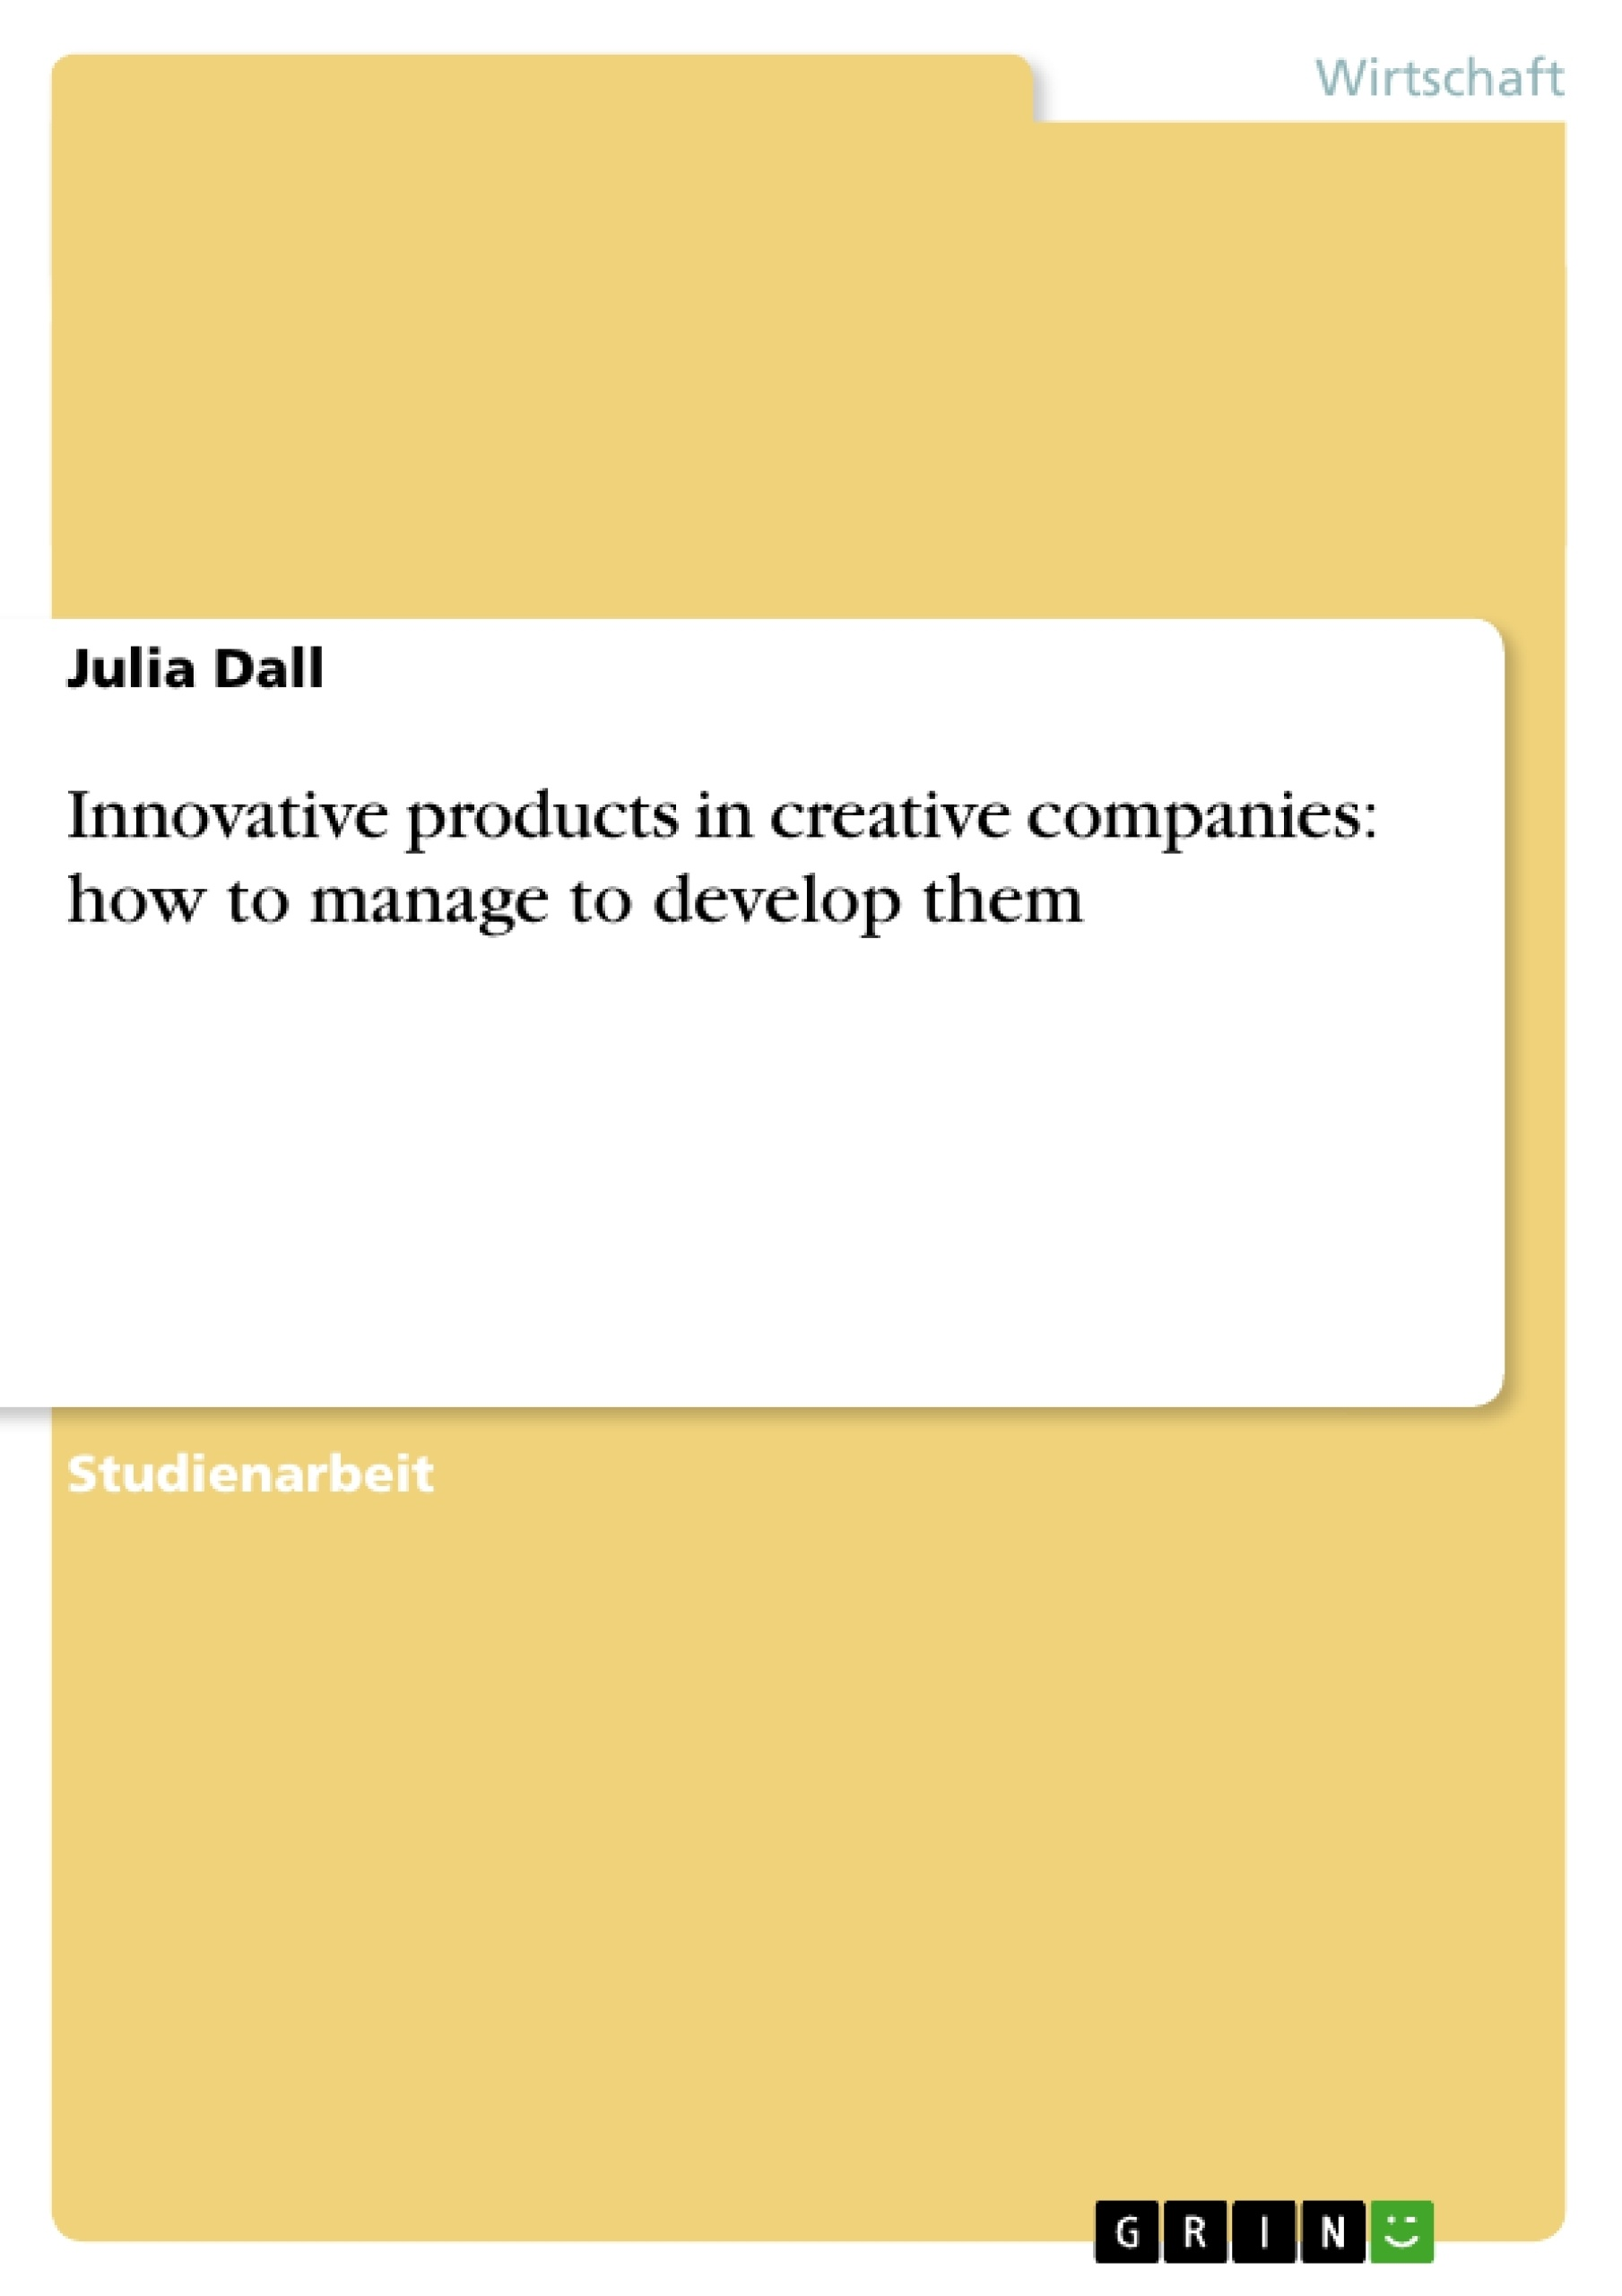 Titel: Innovative products in creative companies: how to manage to develop them